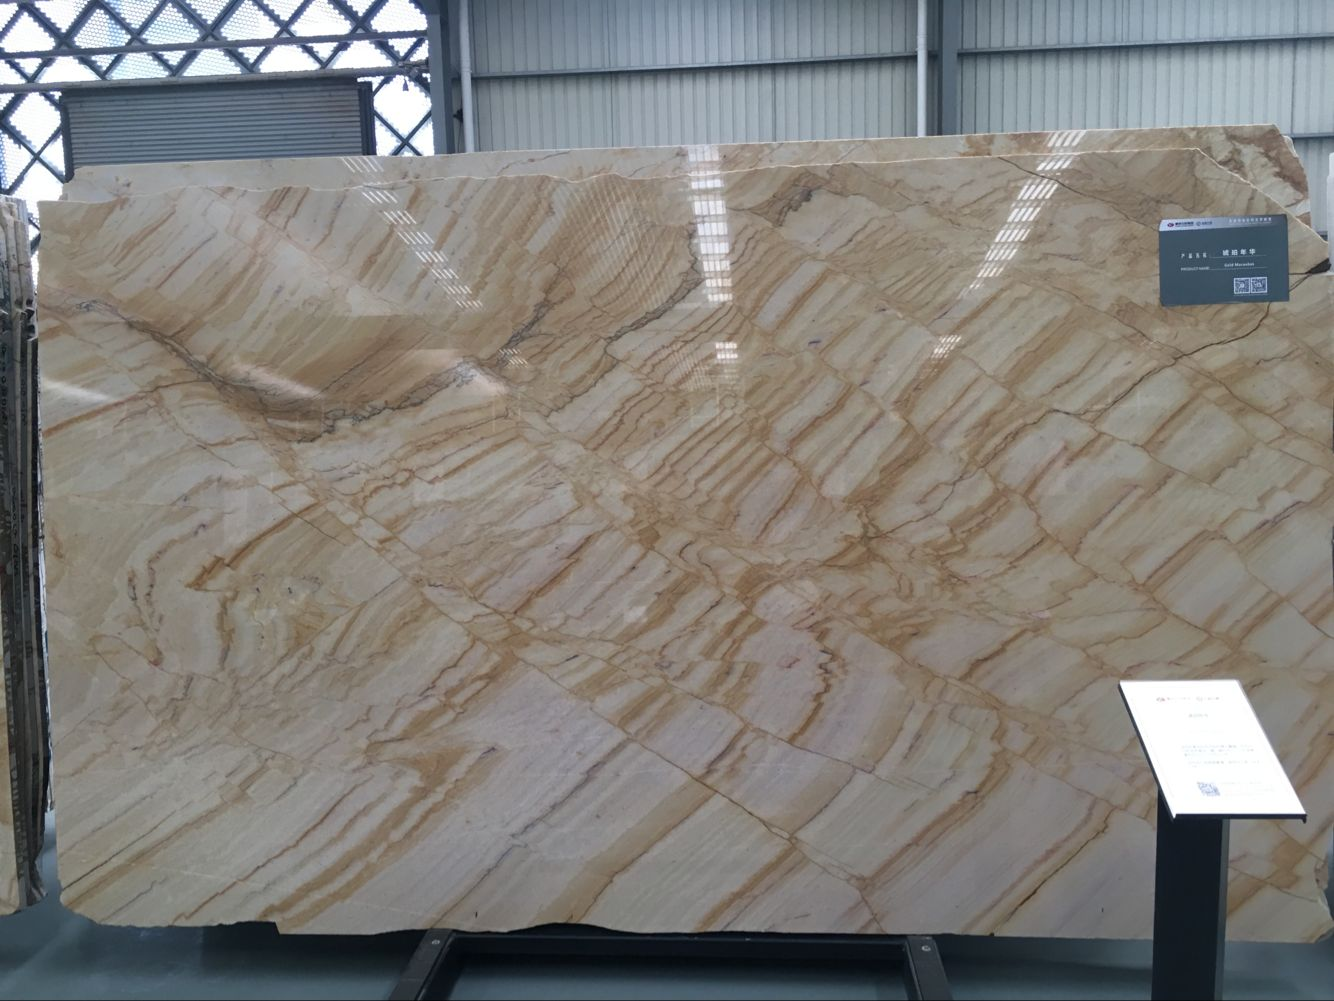 Giallo Macaubas Quartzite Slabs  Yellow Polished Quartzite Slabs